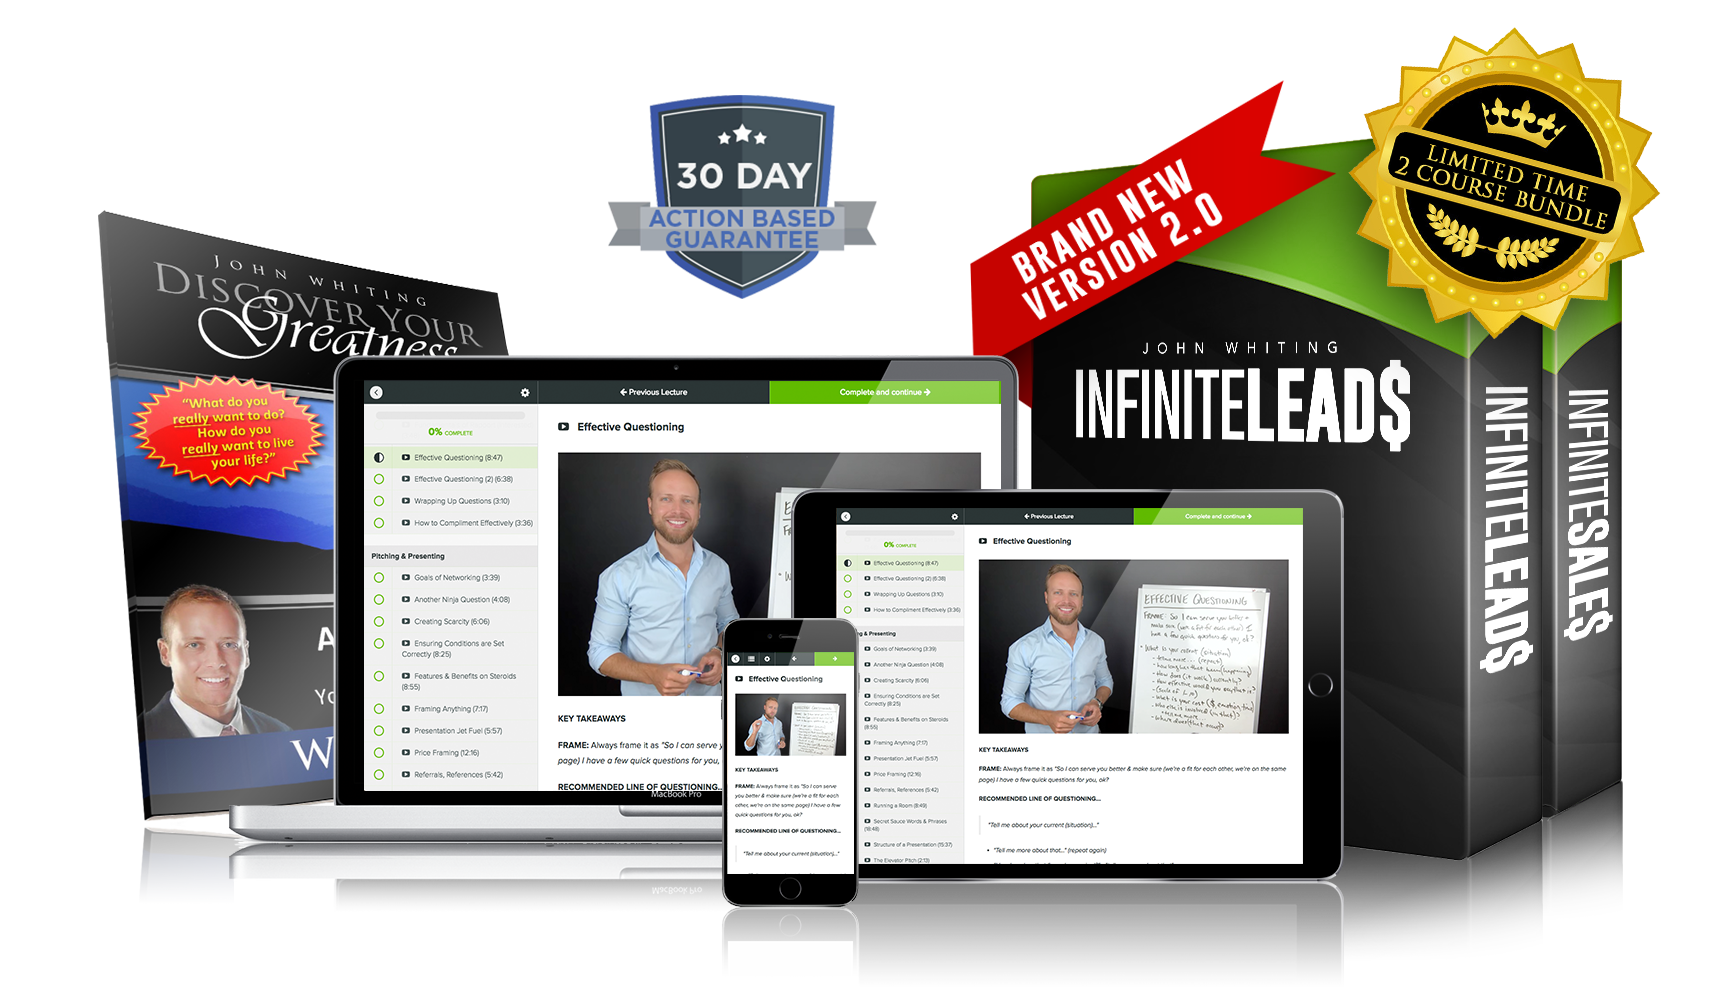 John Whiting – Infinite Leads 2.0 Download